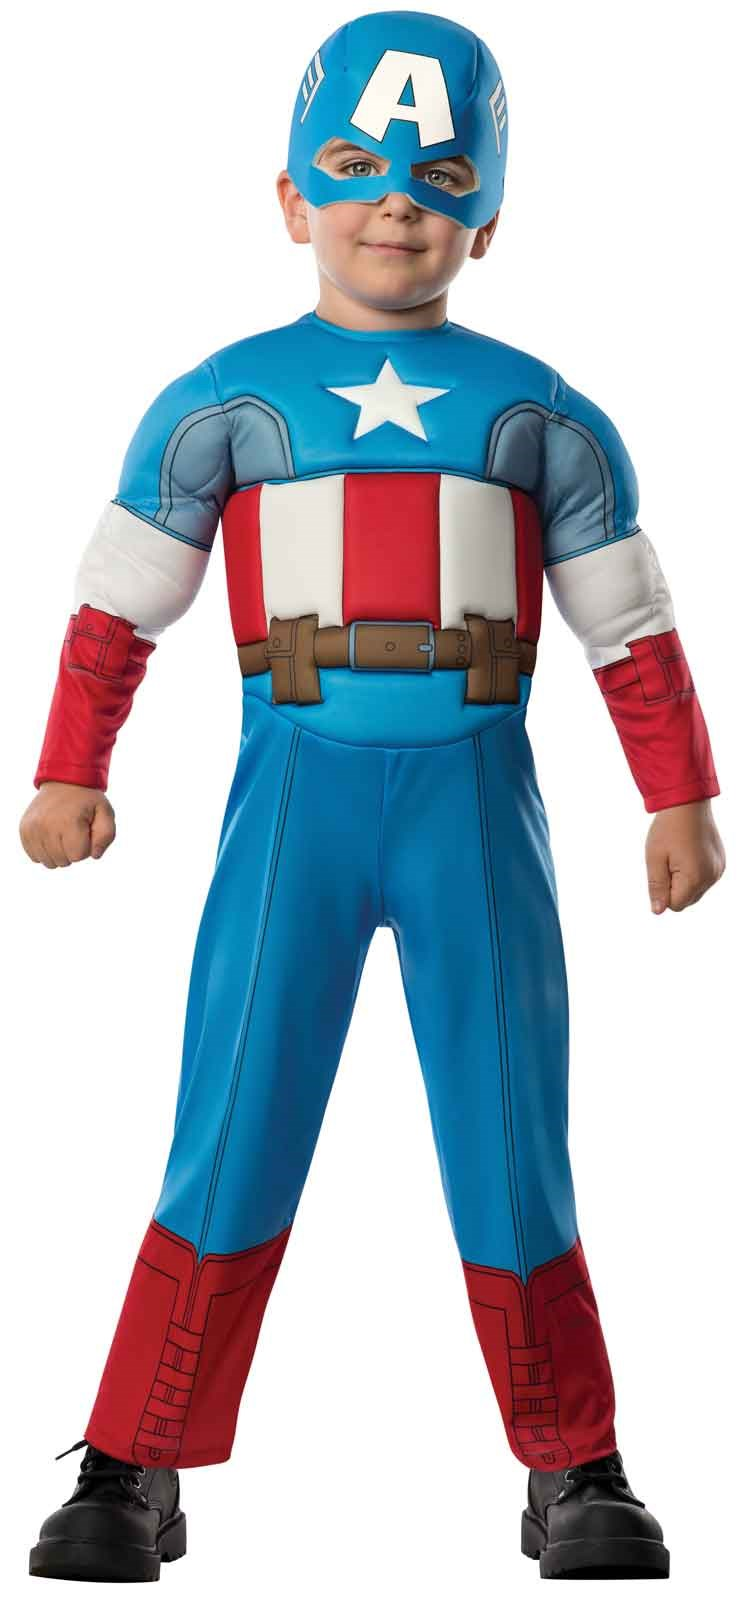 Avengers Assemble Captain America Toddler Boy Costume Toddler (2-4)